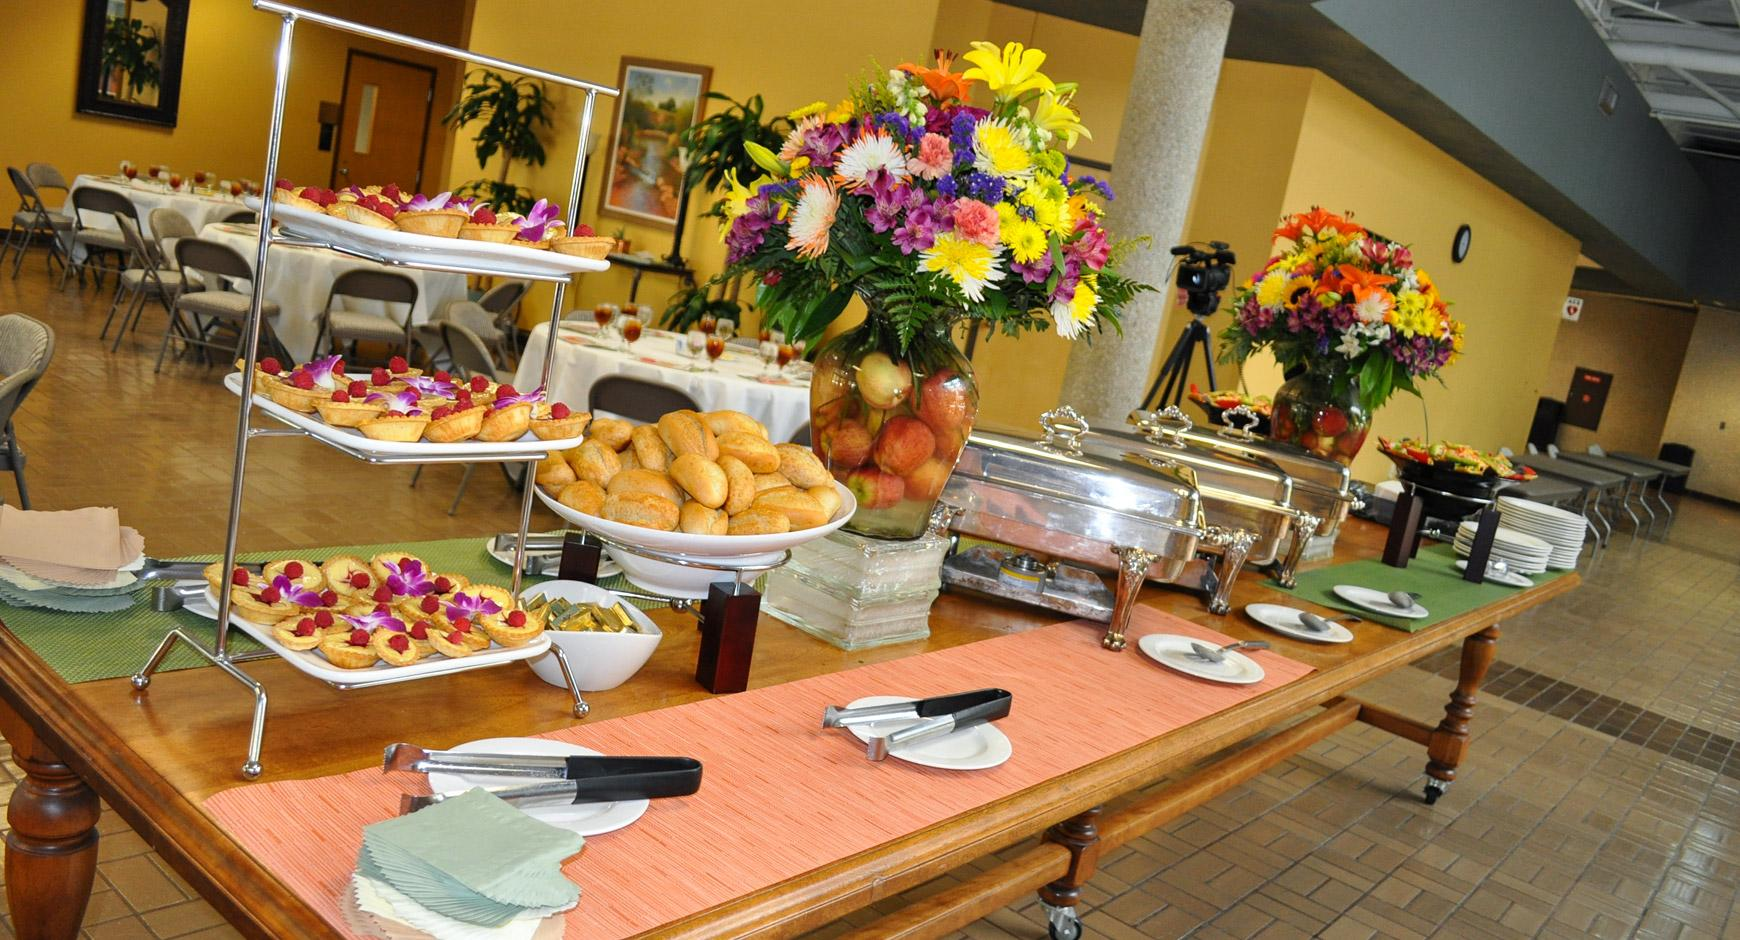 Cafe and catering table spread